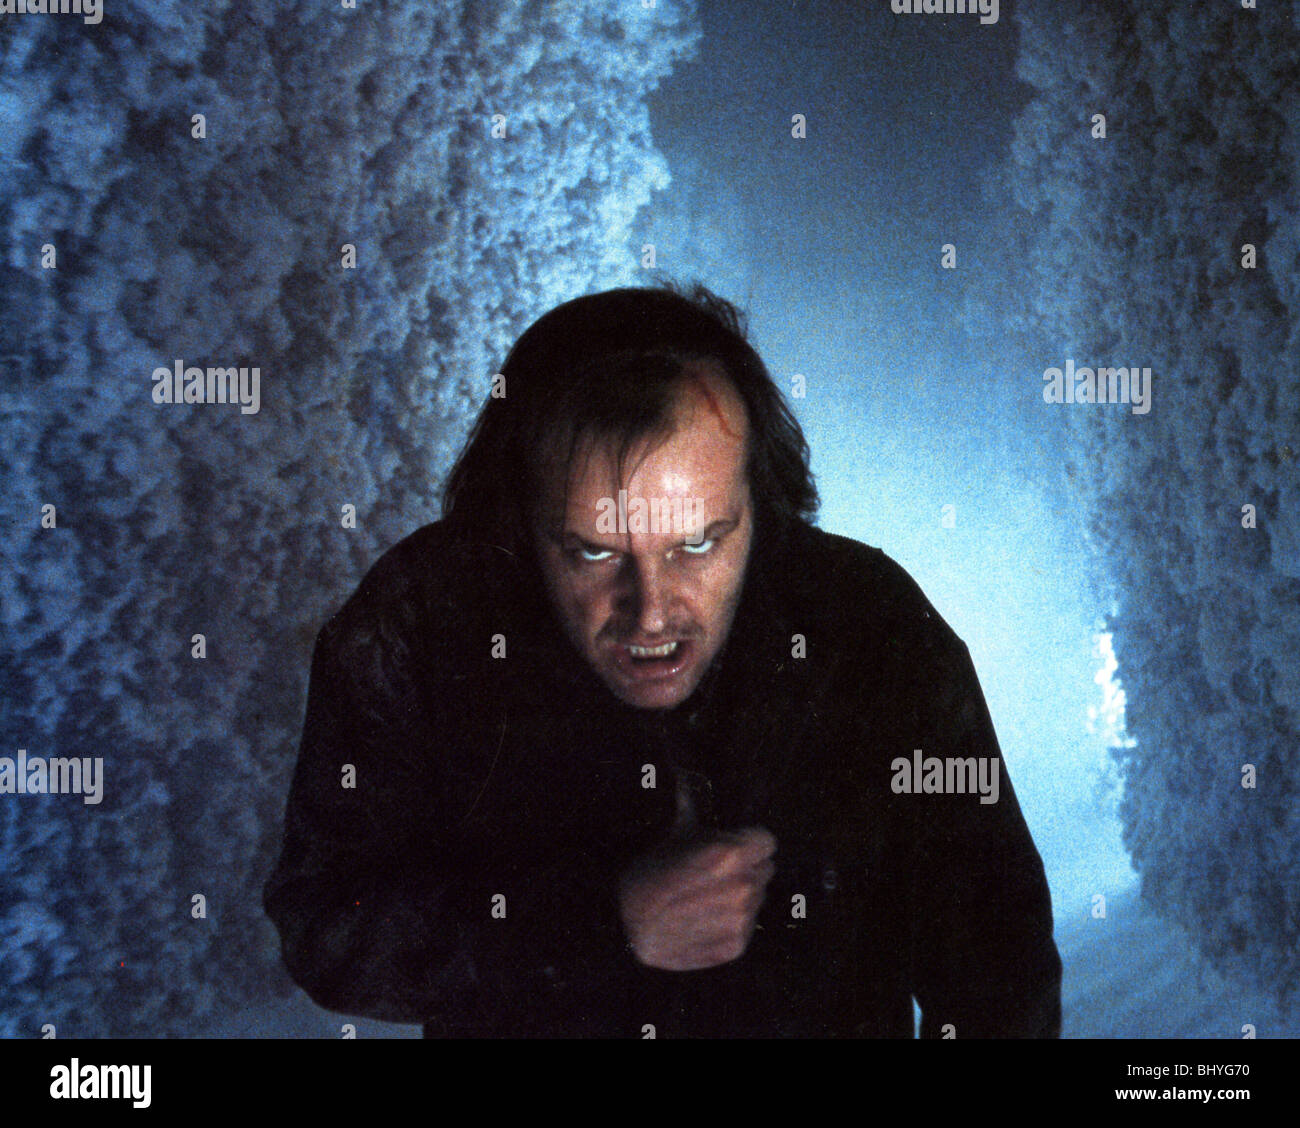 THE SHINING - 1980 Warner film with Jack Nicholson - Stock Image